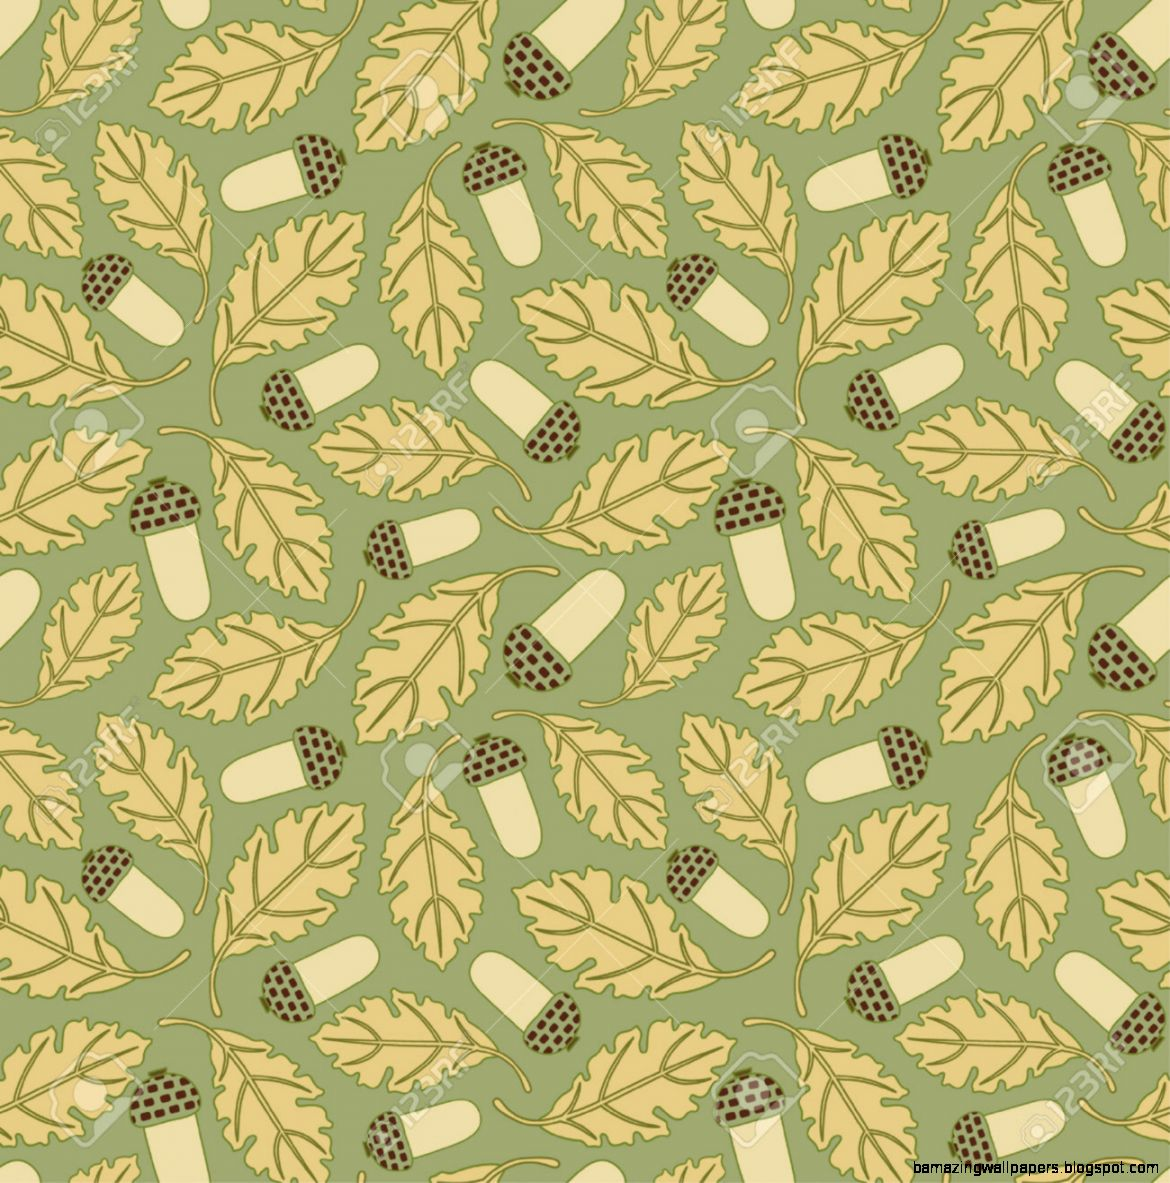 Acorn And Oak Leaves In Pattern Royalty Free Cliparts Vectors